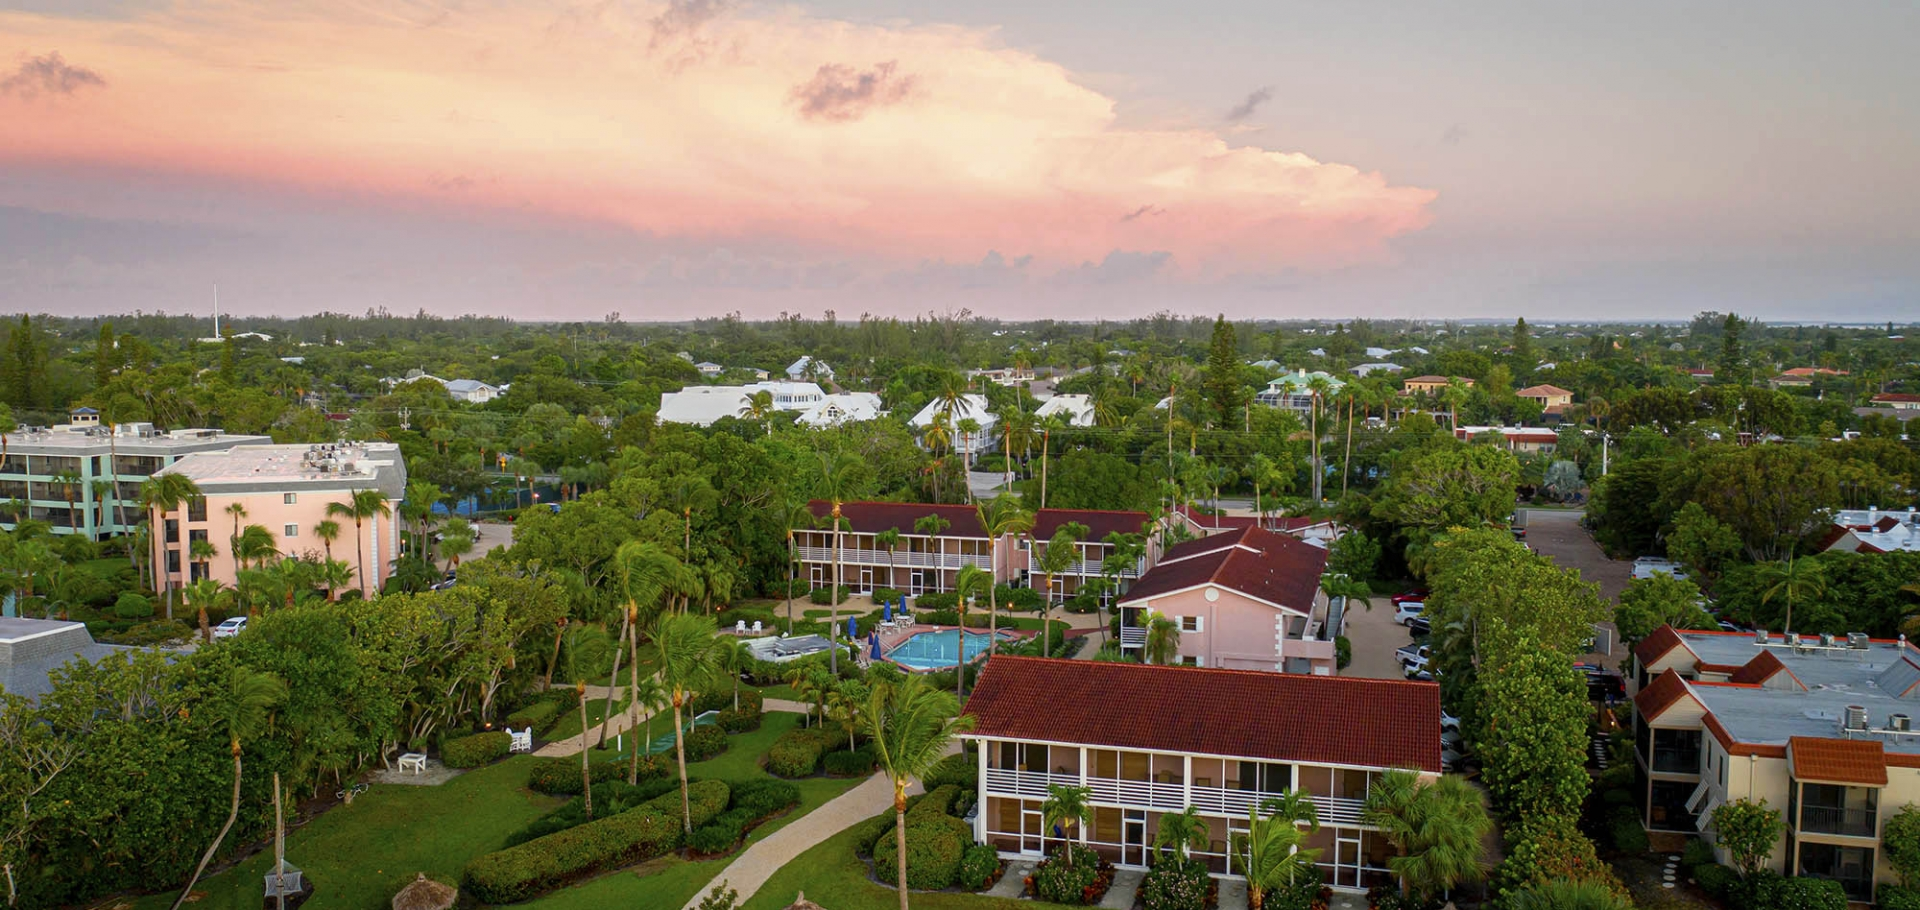 Sanibel's Song of the Sea Inn from above